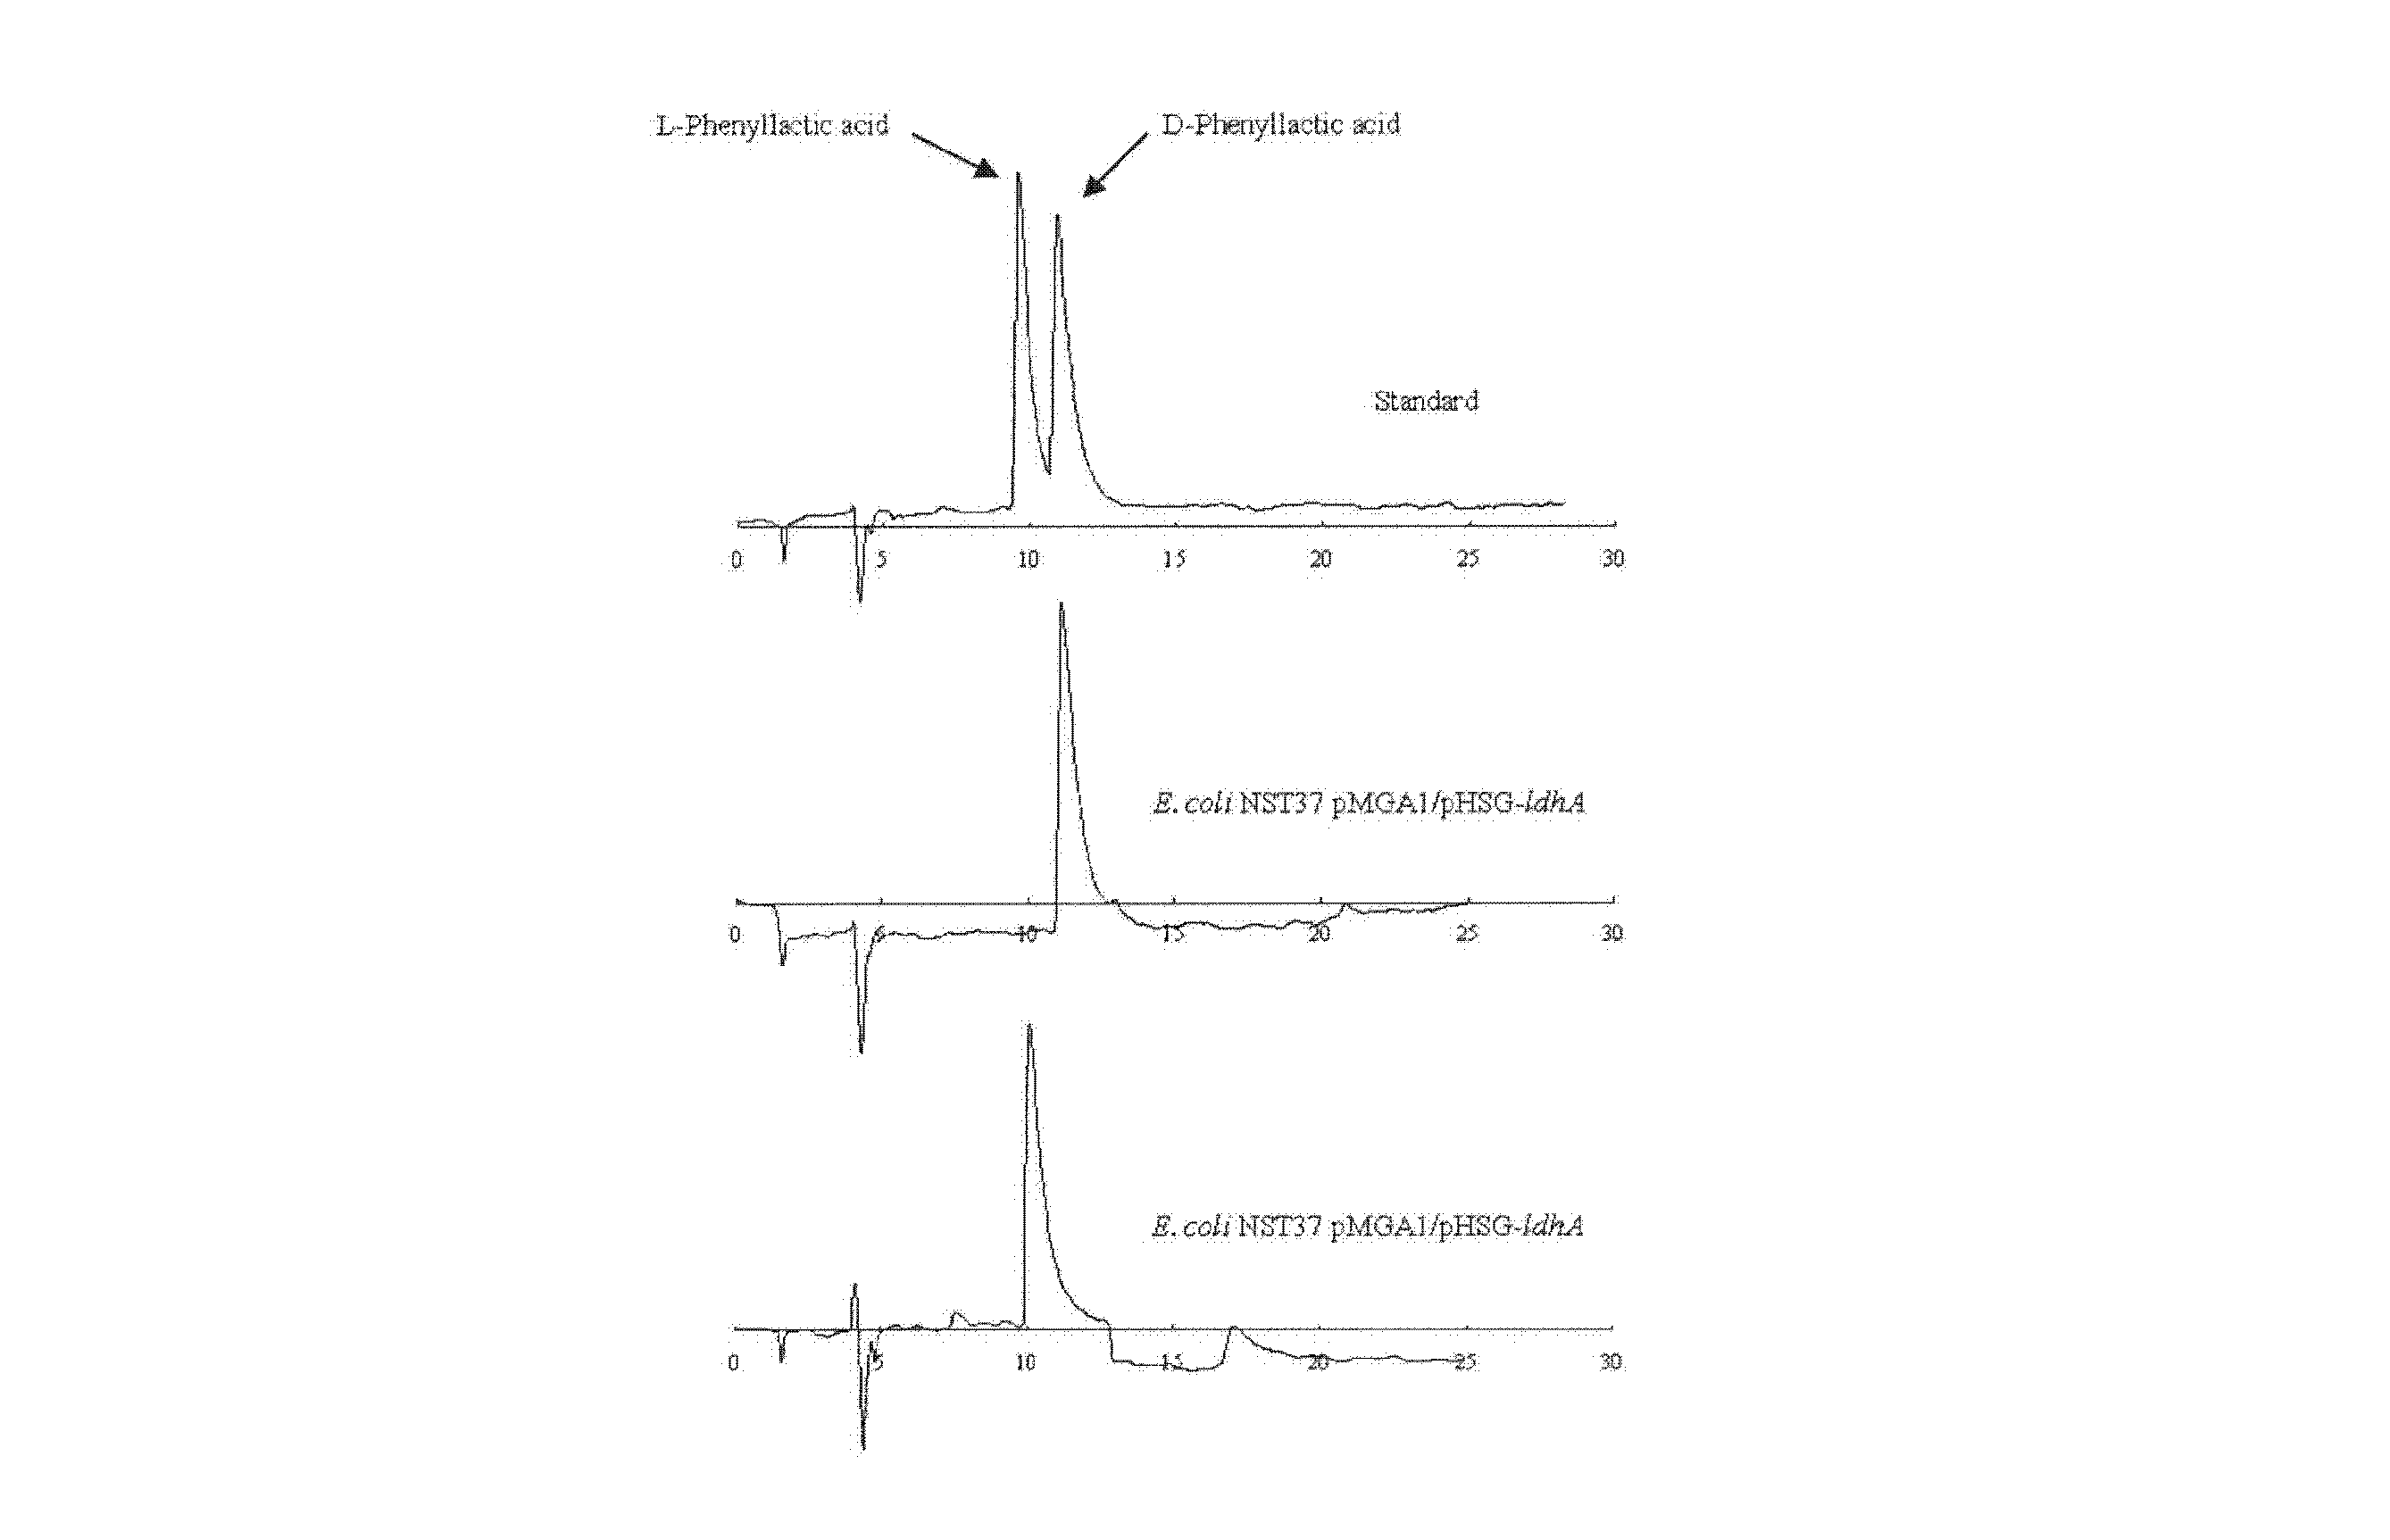 Patents                                                                                                                         Generate link with comments                           Phenylpyruvate reductase and method for manufacturing optically-active phenyllactic acid and 4-hydroxyl-phenyllactic acid using same enzyme